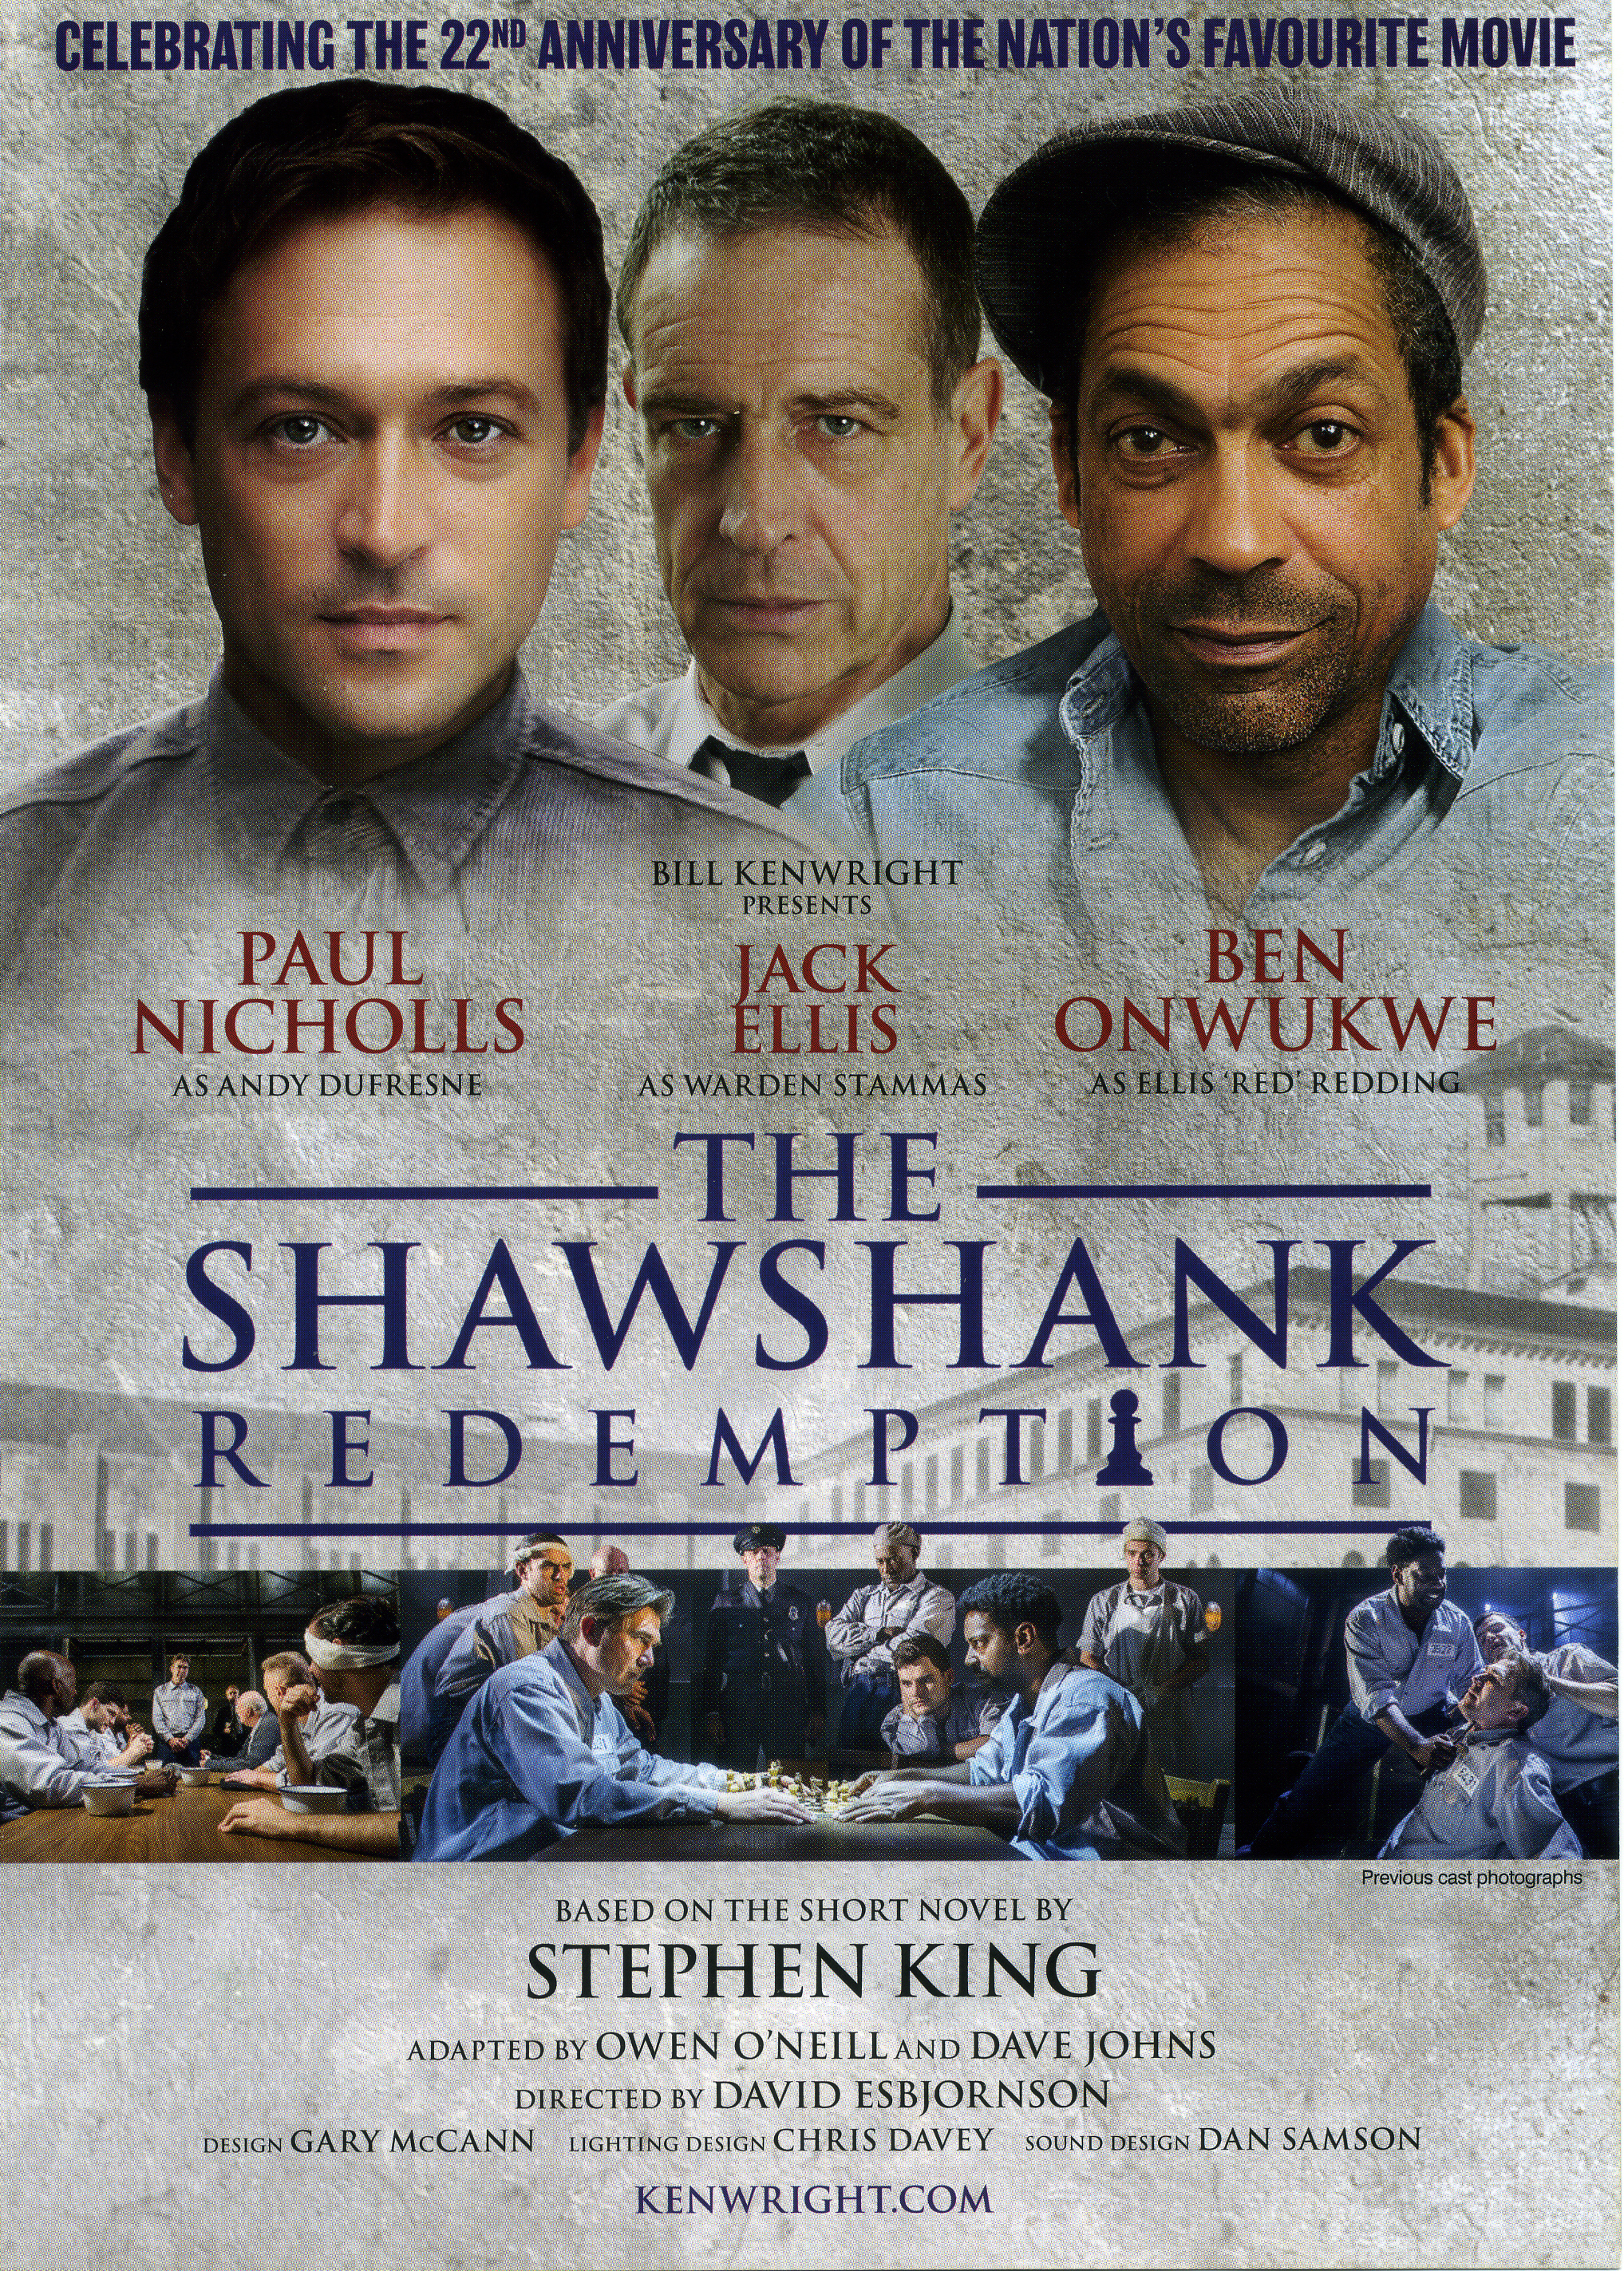 "critique shawshank redemption essays The shawshank redemption aqa, the examination board, has asked selected pupils to submit written reports on possible films to be studied for the media section of the gcse english exam, specifically of the ""the shawshank redemption."